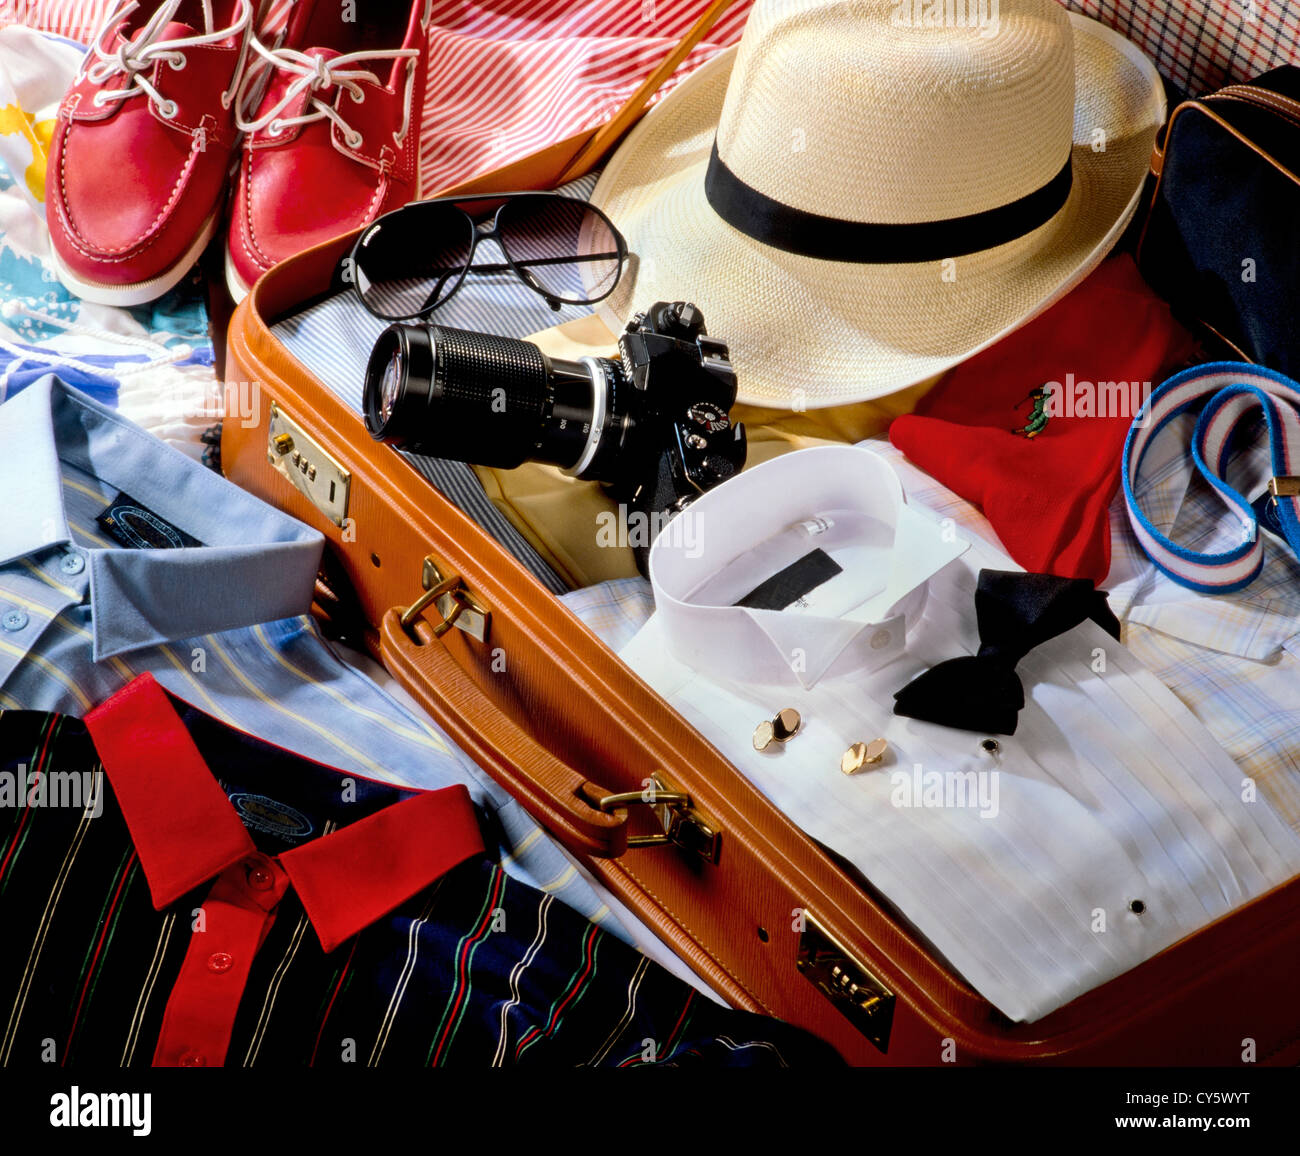 TRAVELLER'S SUITCASE - Stock Image